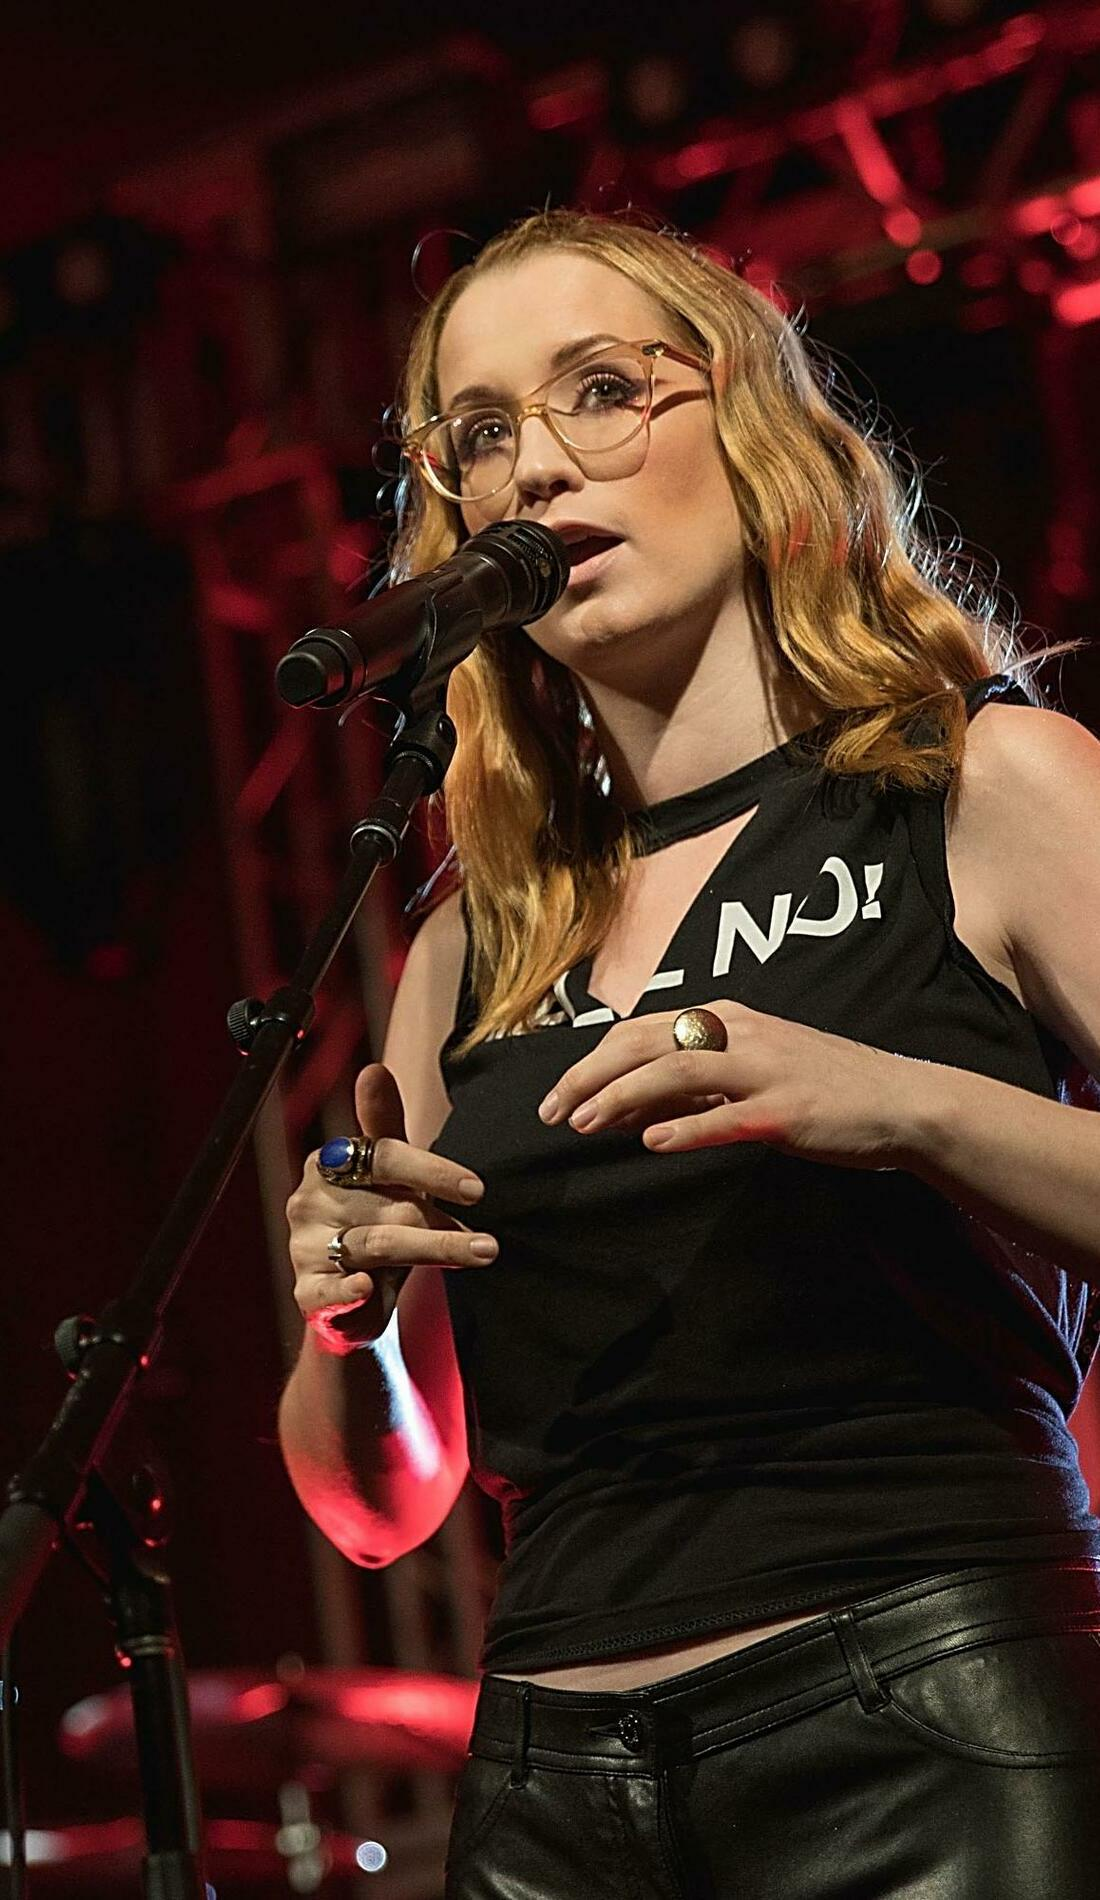 A Ingrid Michaelson live event